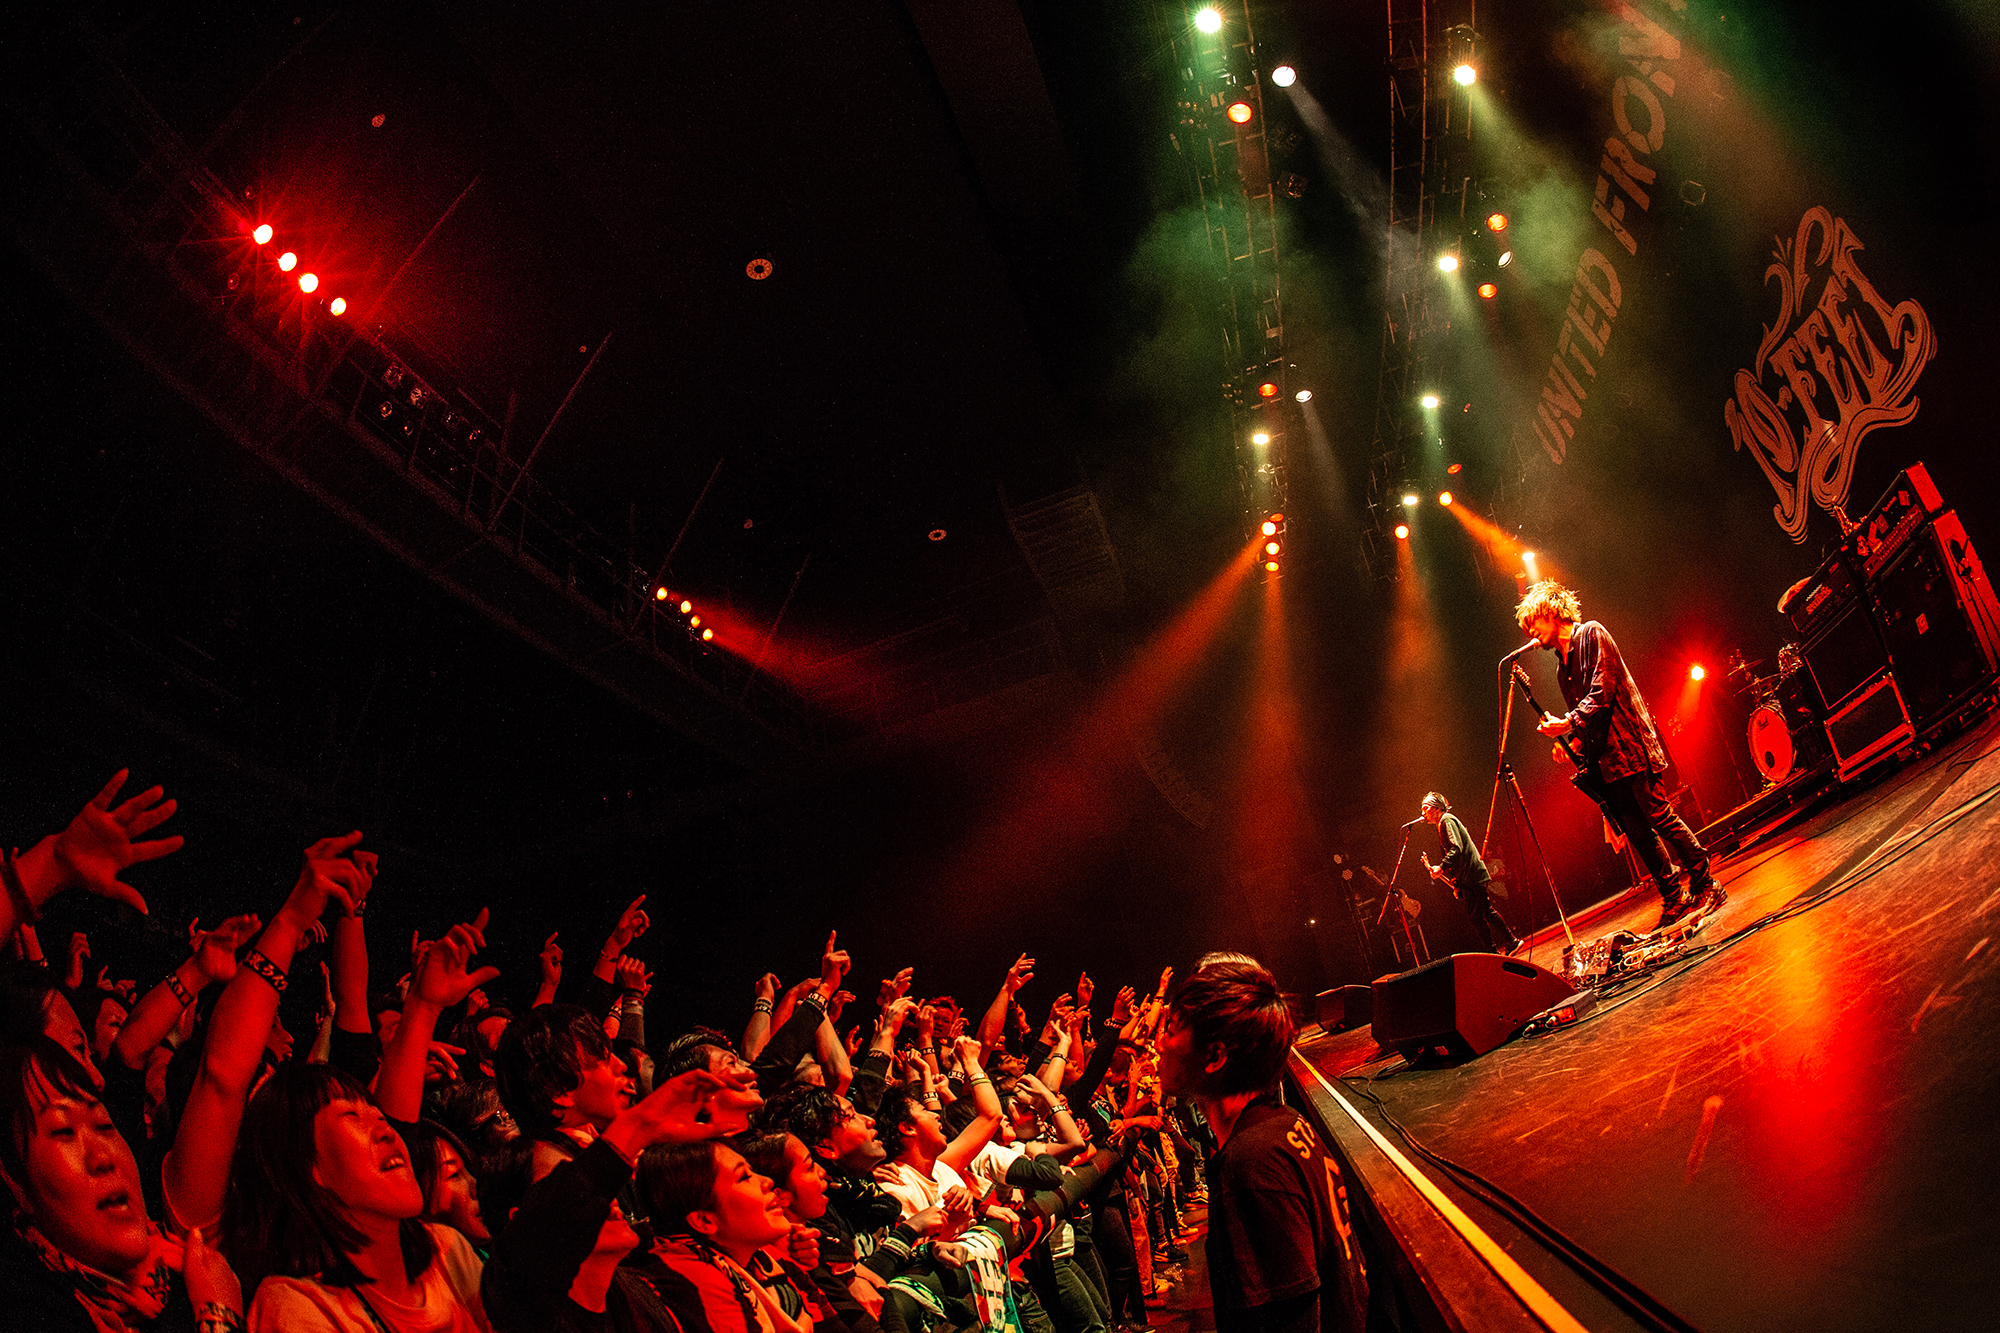 10-FEET@Dragon Ash LIVE TOUR 「UNITED FRONT」 photo by TAKAHIRO TAKINAMI